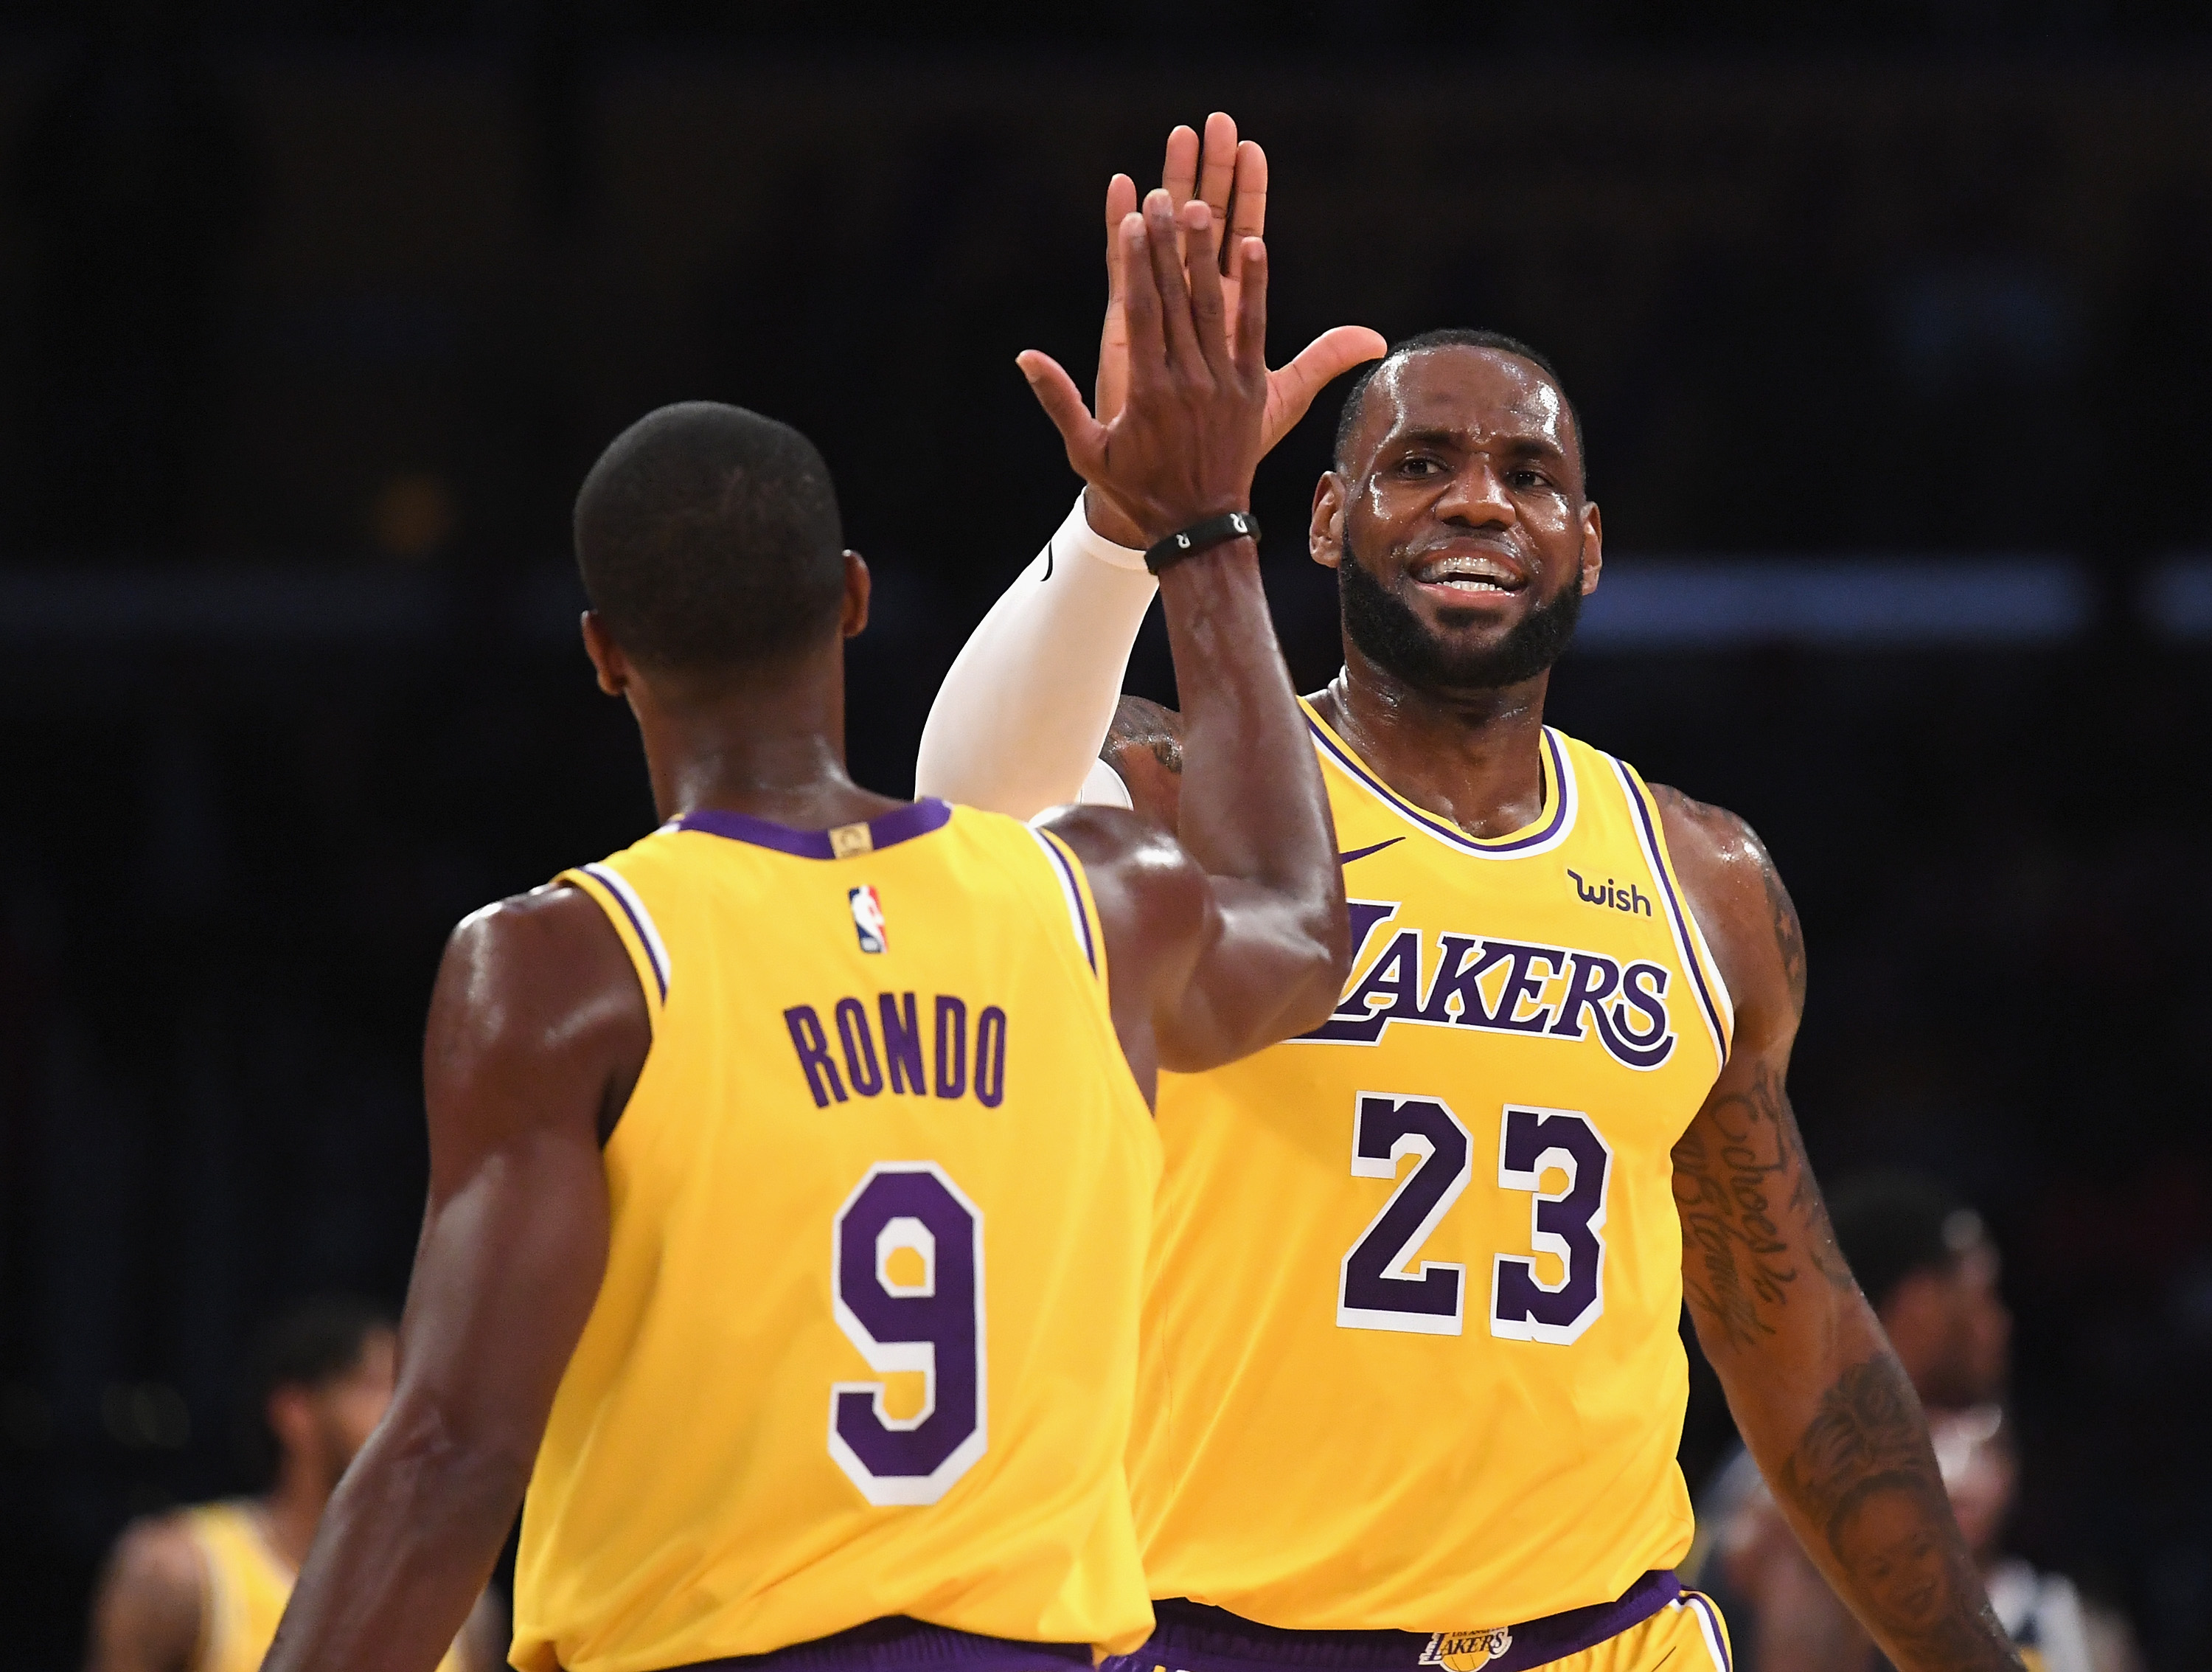 brink of getting Lakers rings together